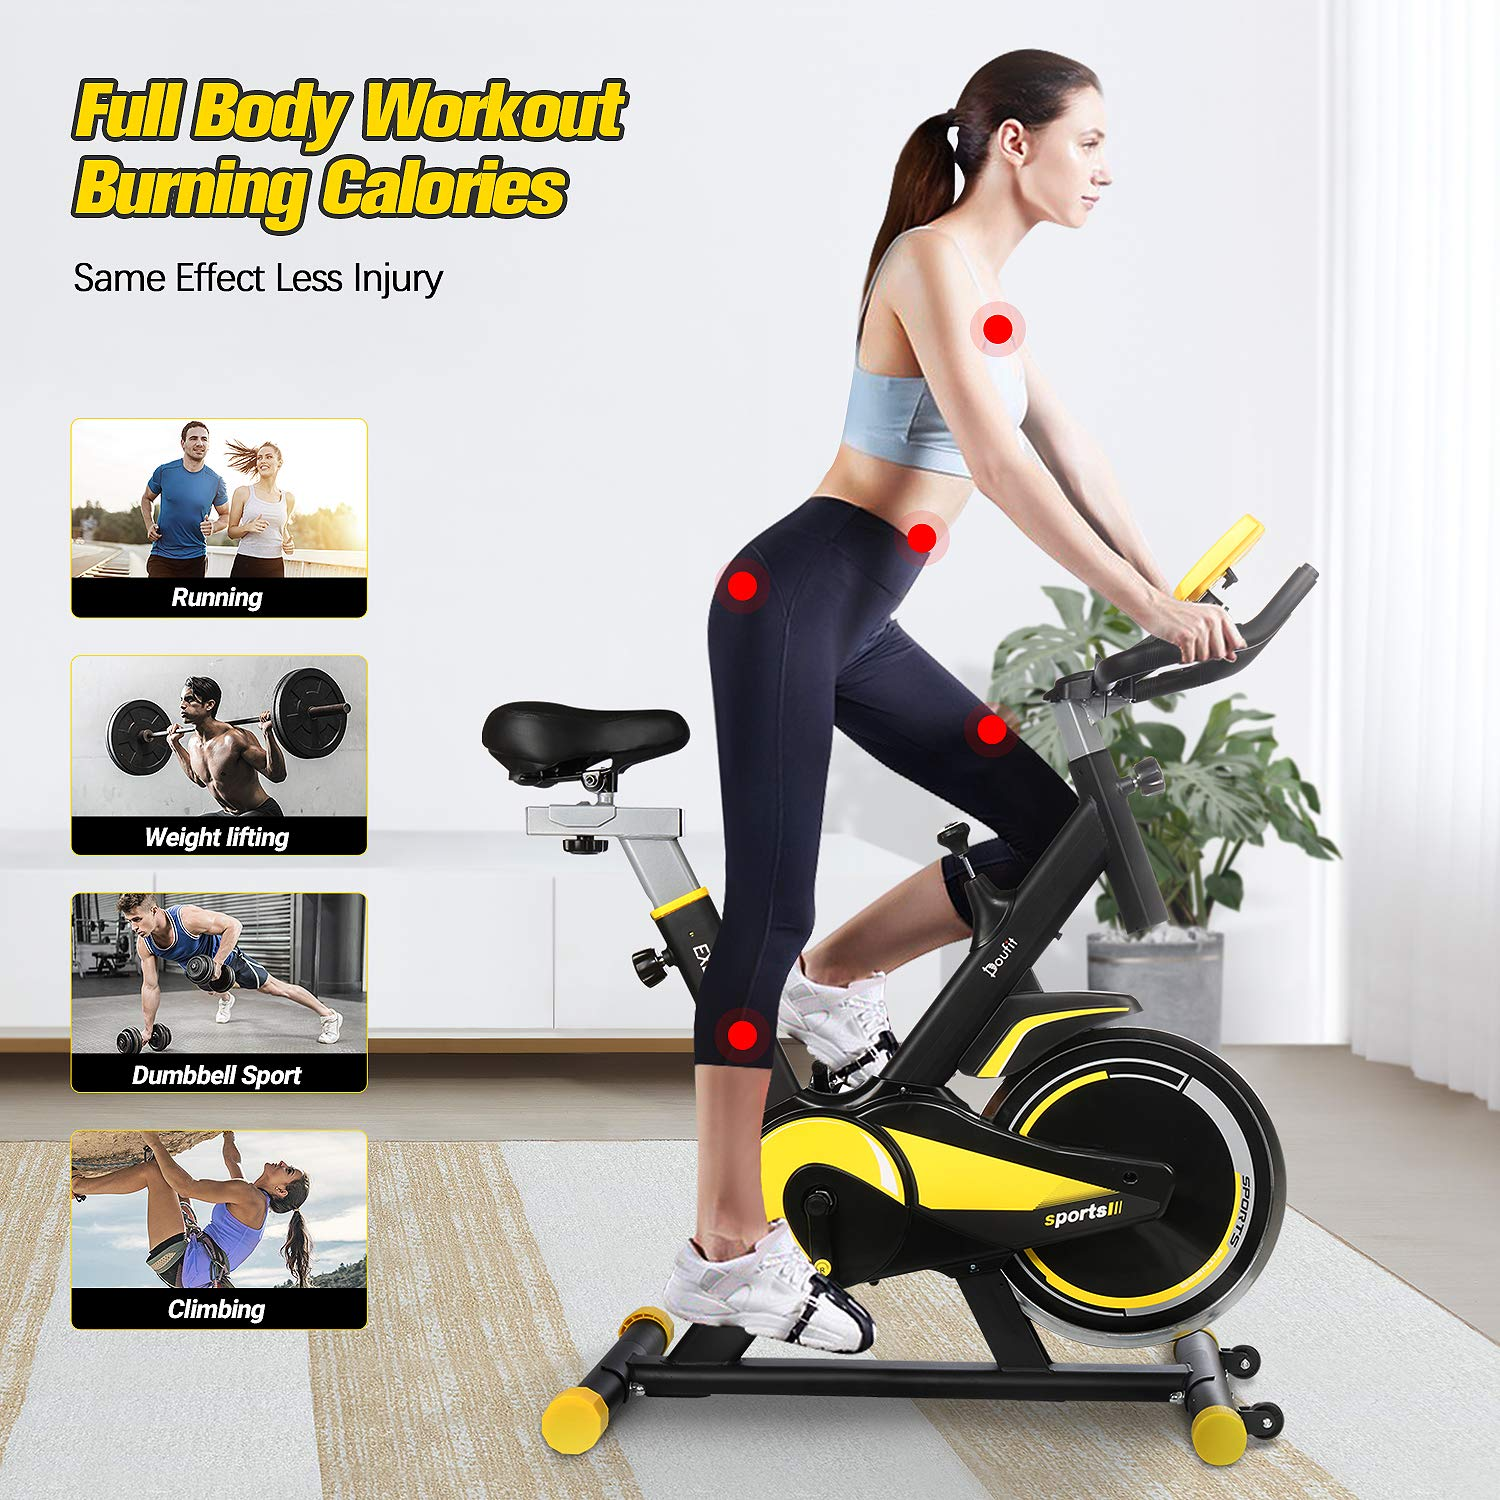 Permalink to Doufit EB-09 Indoor Cycling Exercise Bike Weight Loss Machine Aerobic 13KG Flywheel Home Gym Fitness Equipment Max 264 Lbs